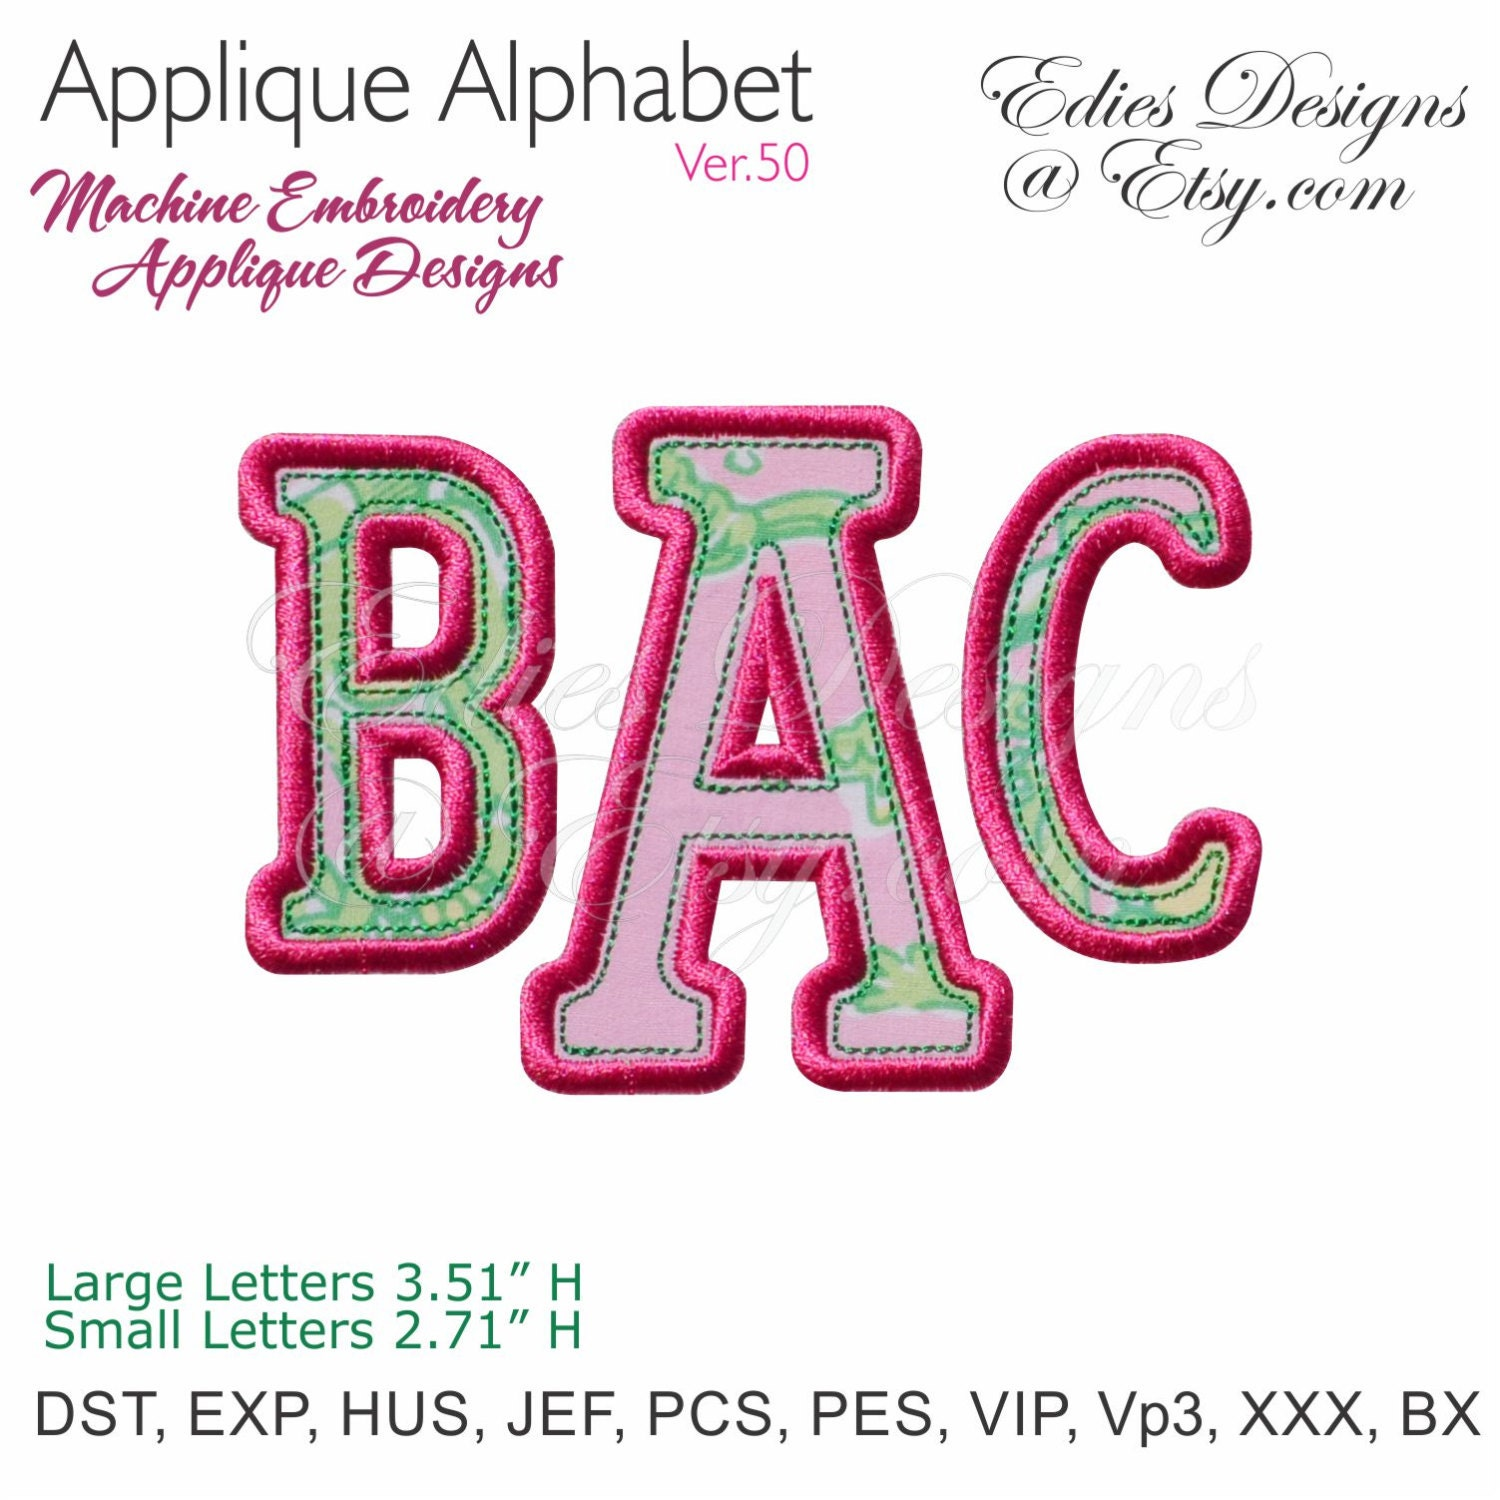 Applique alphabet machine embroidery designs monogram